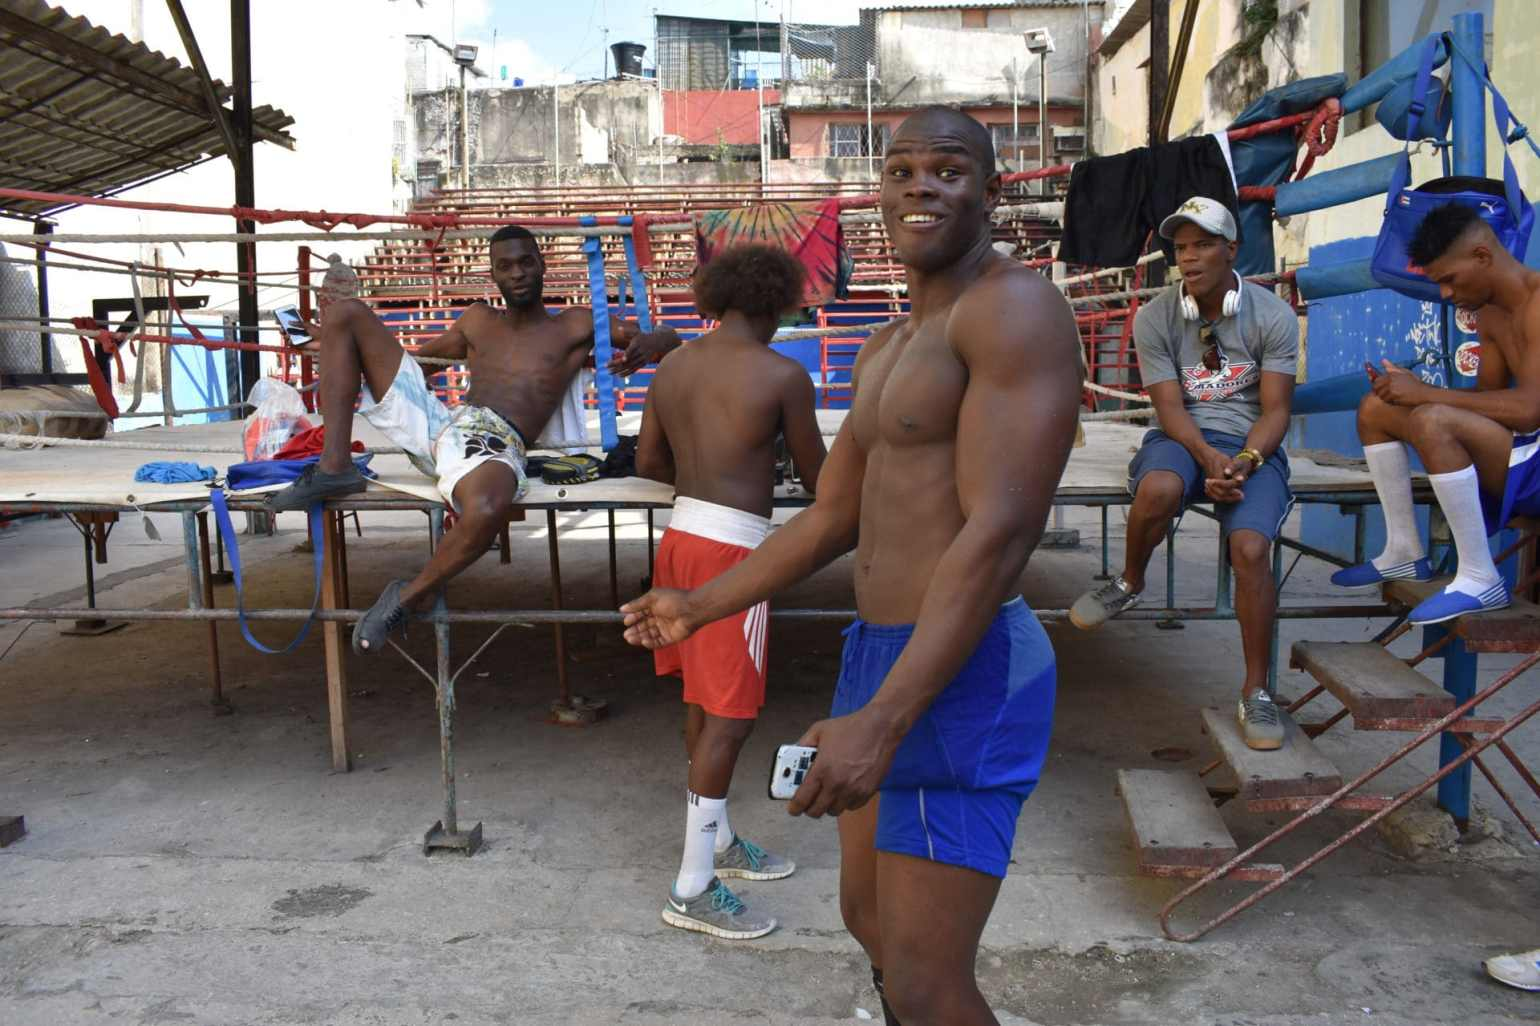 A bunch of the boxers (jacked monsters) at Gimnasio de Boxeo Rafael Trejo in Havana, Cuba